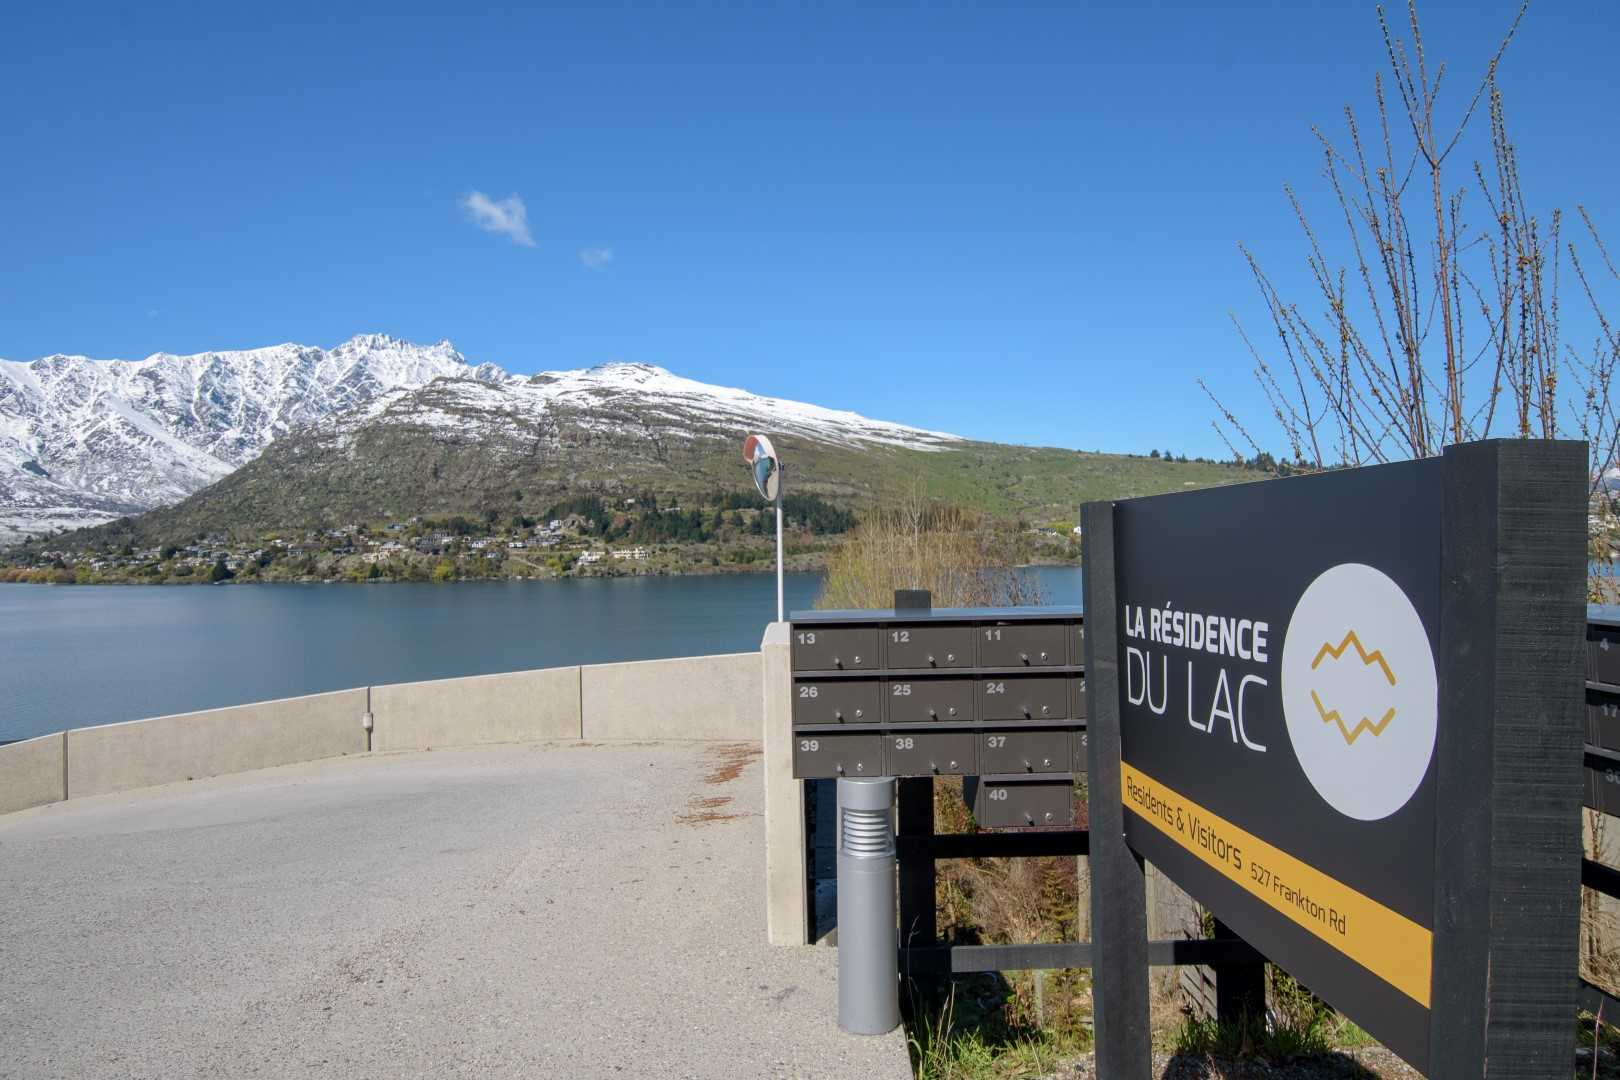 La Residence du Lac - Units: 40 / Value: 17.5M / Southern Architecture / 527 Frankton Road, Queenstown